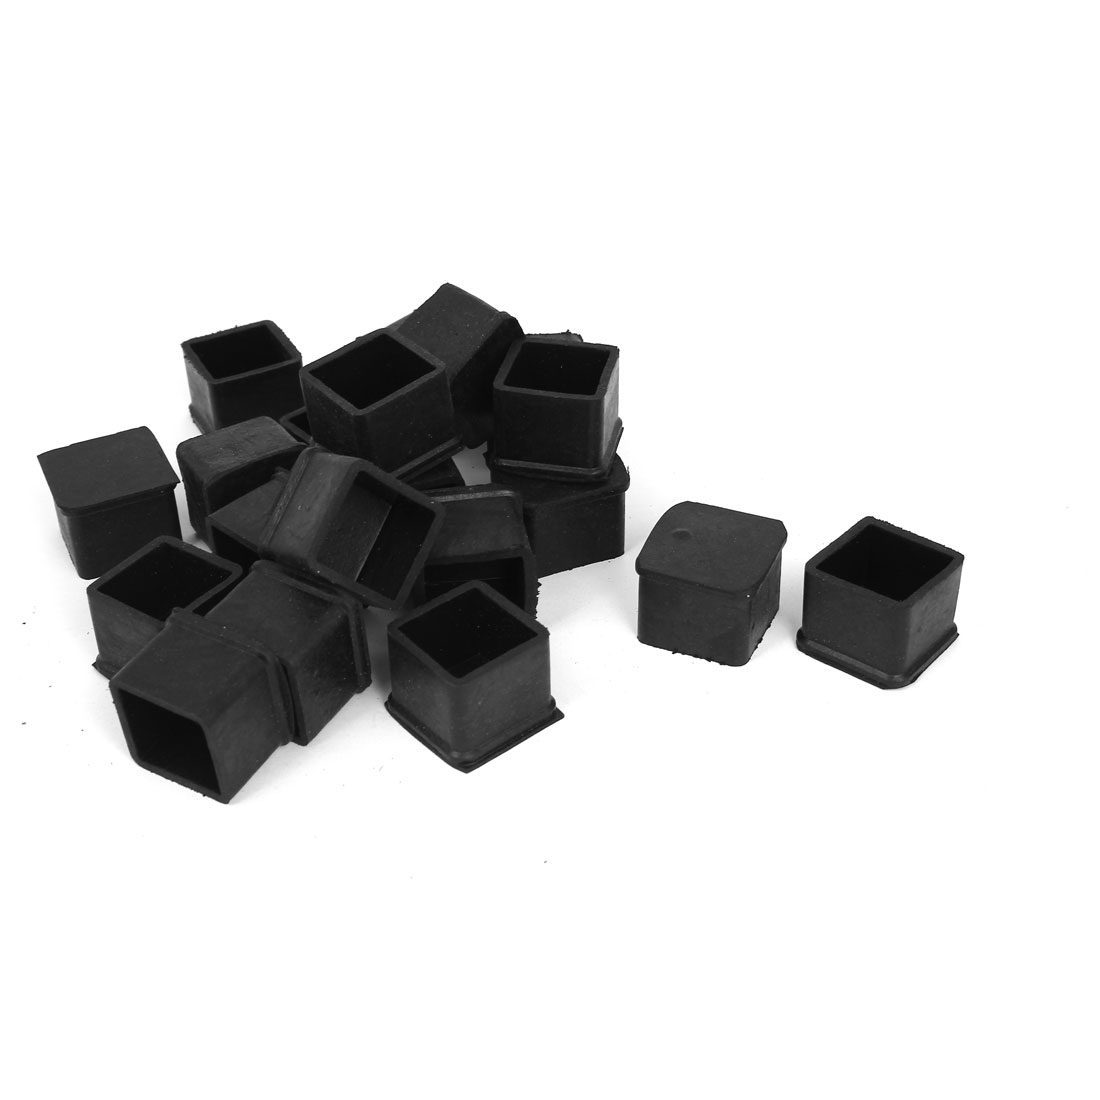 28pcs Black Rubber Furniture Table Foot Leg Covers Pad Floor Protector 25mmx25mm